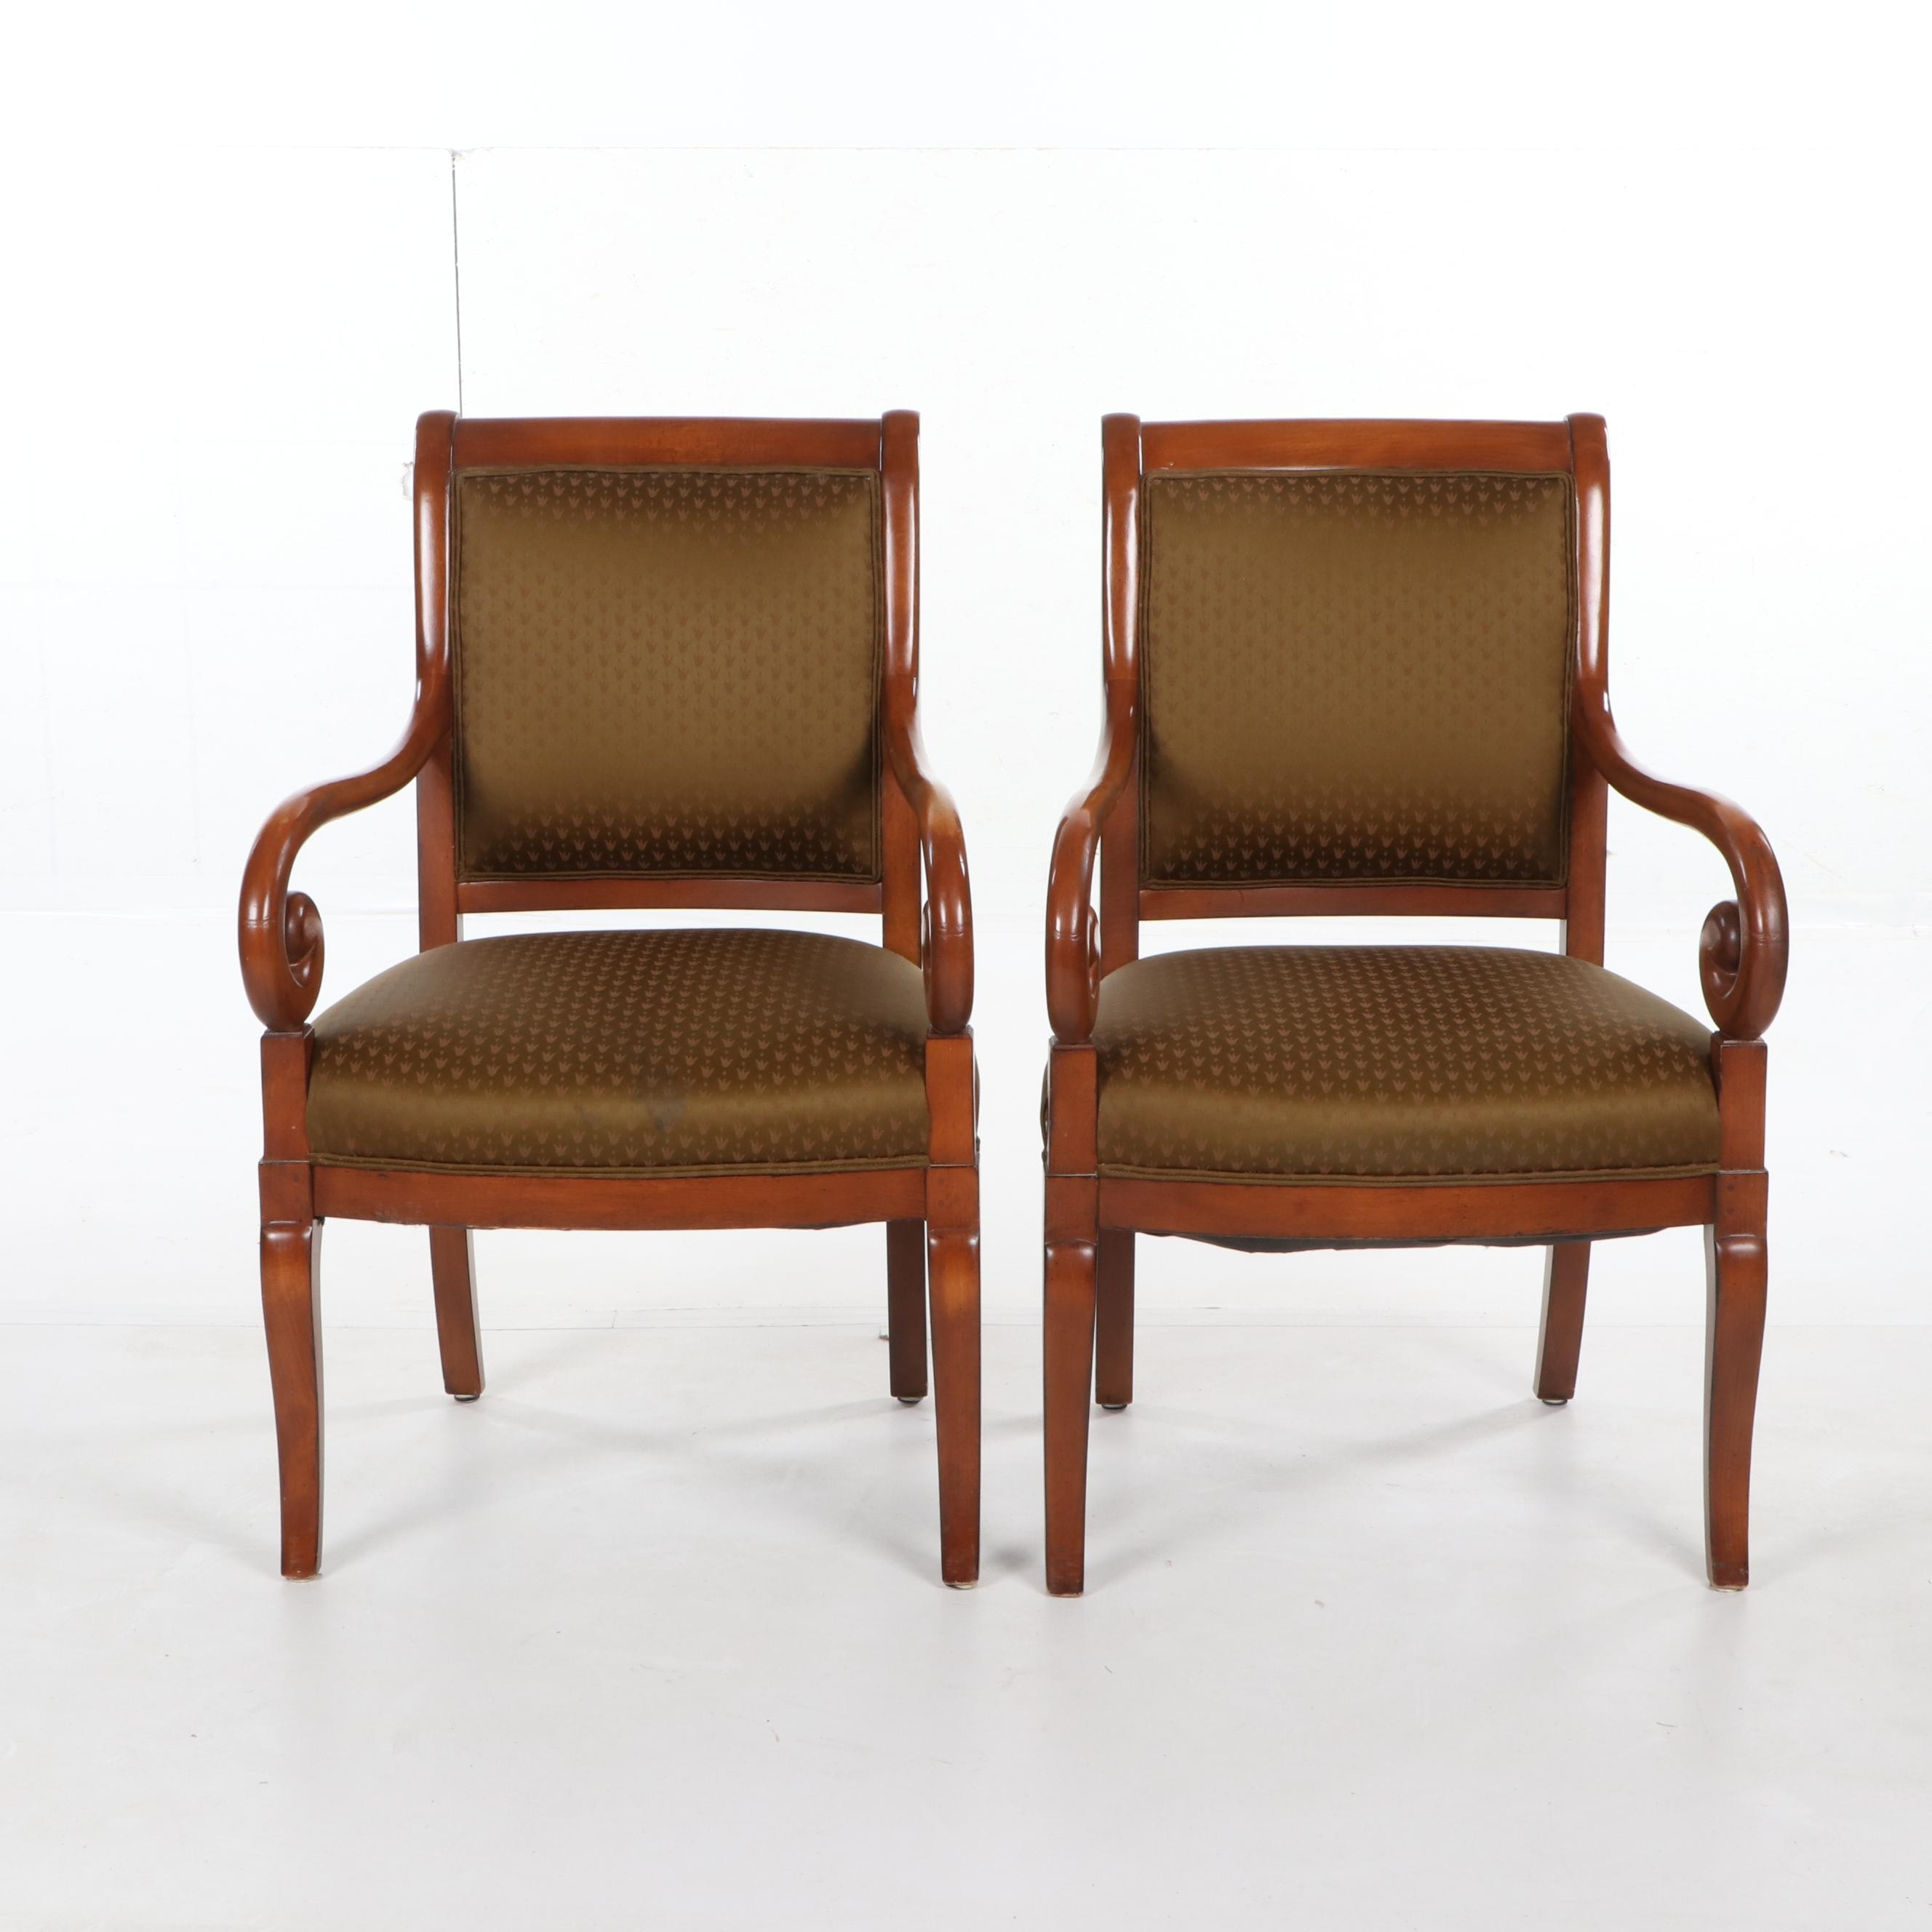 Regency Style Birch Frame Upholstered Armchairs by Trouvailles, 21st Century